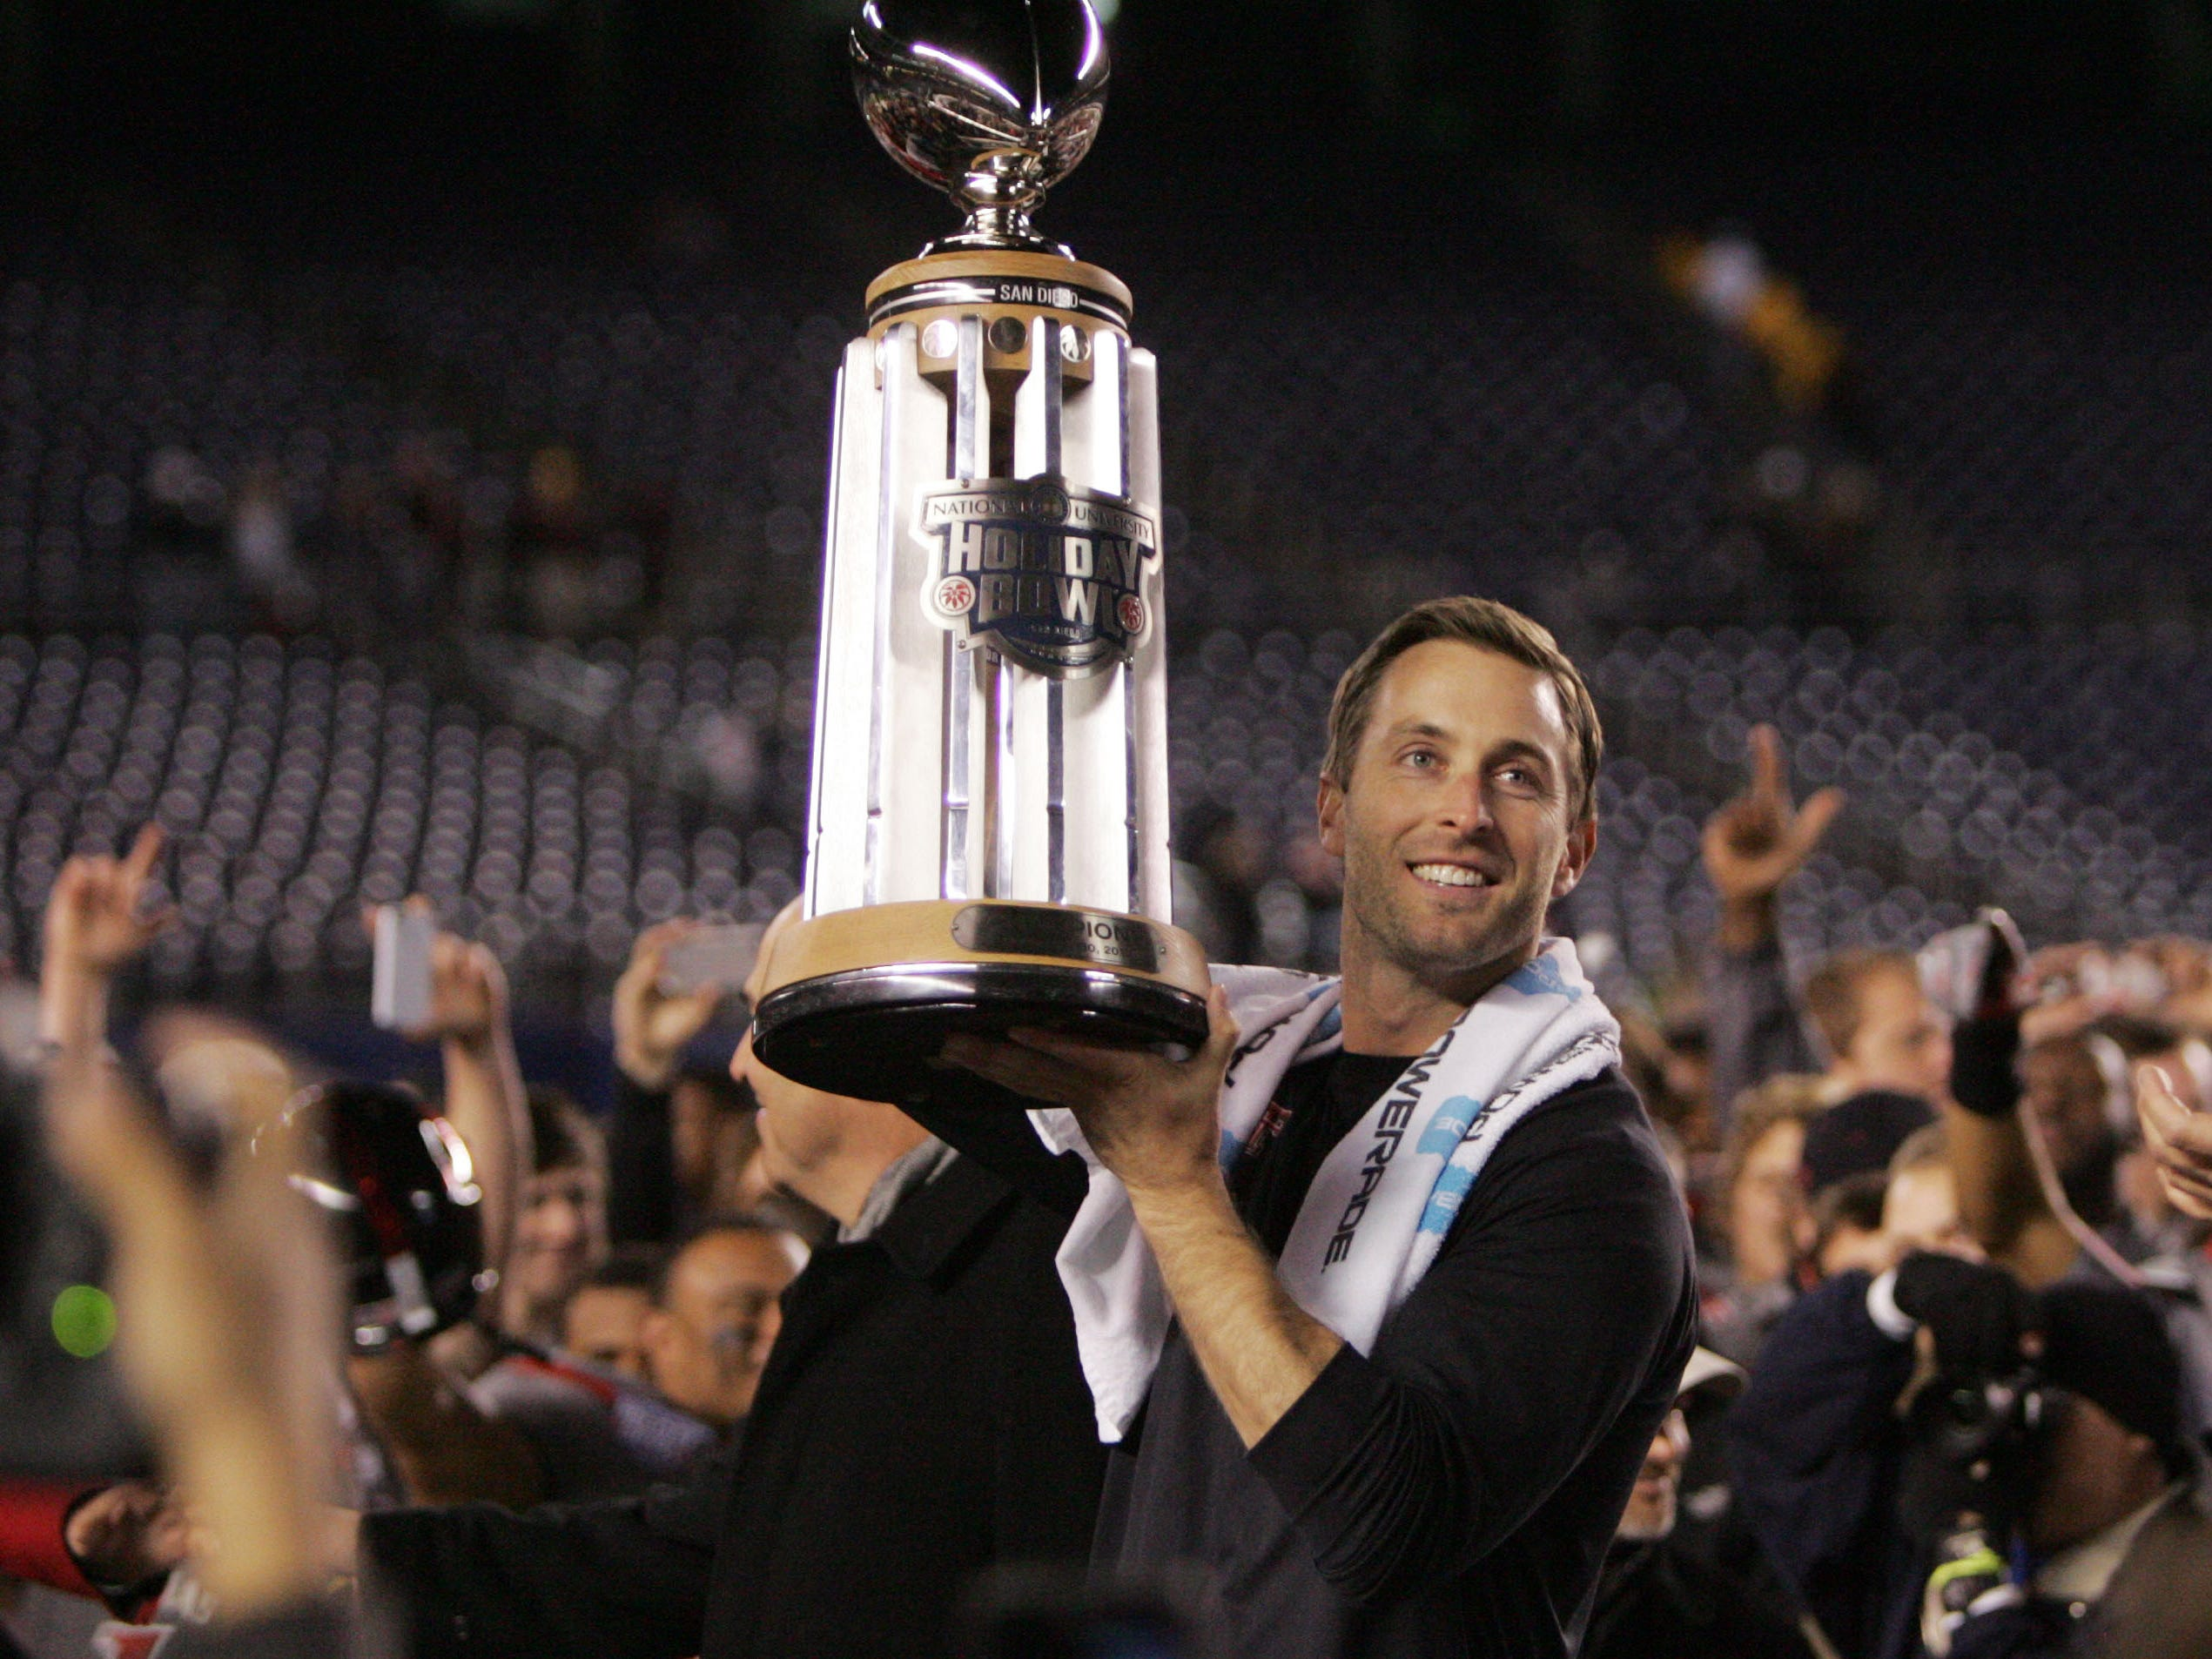 Texas Tech head coach Kliff Kingsbury holds the Holiday Bowl Trophy after defeating Arizona State at Qualcomm Stadium on Dec. 30, 2013 in San Diego.